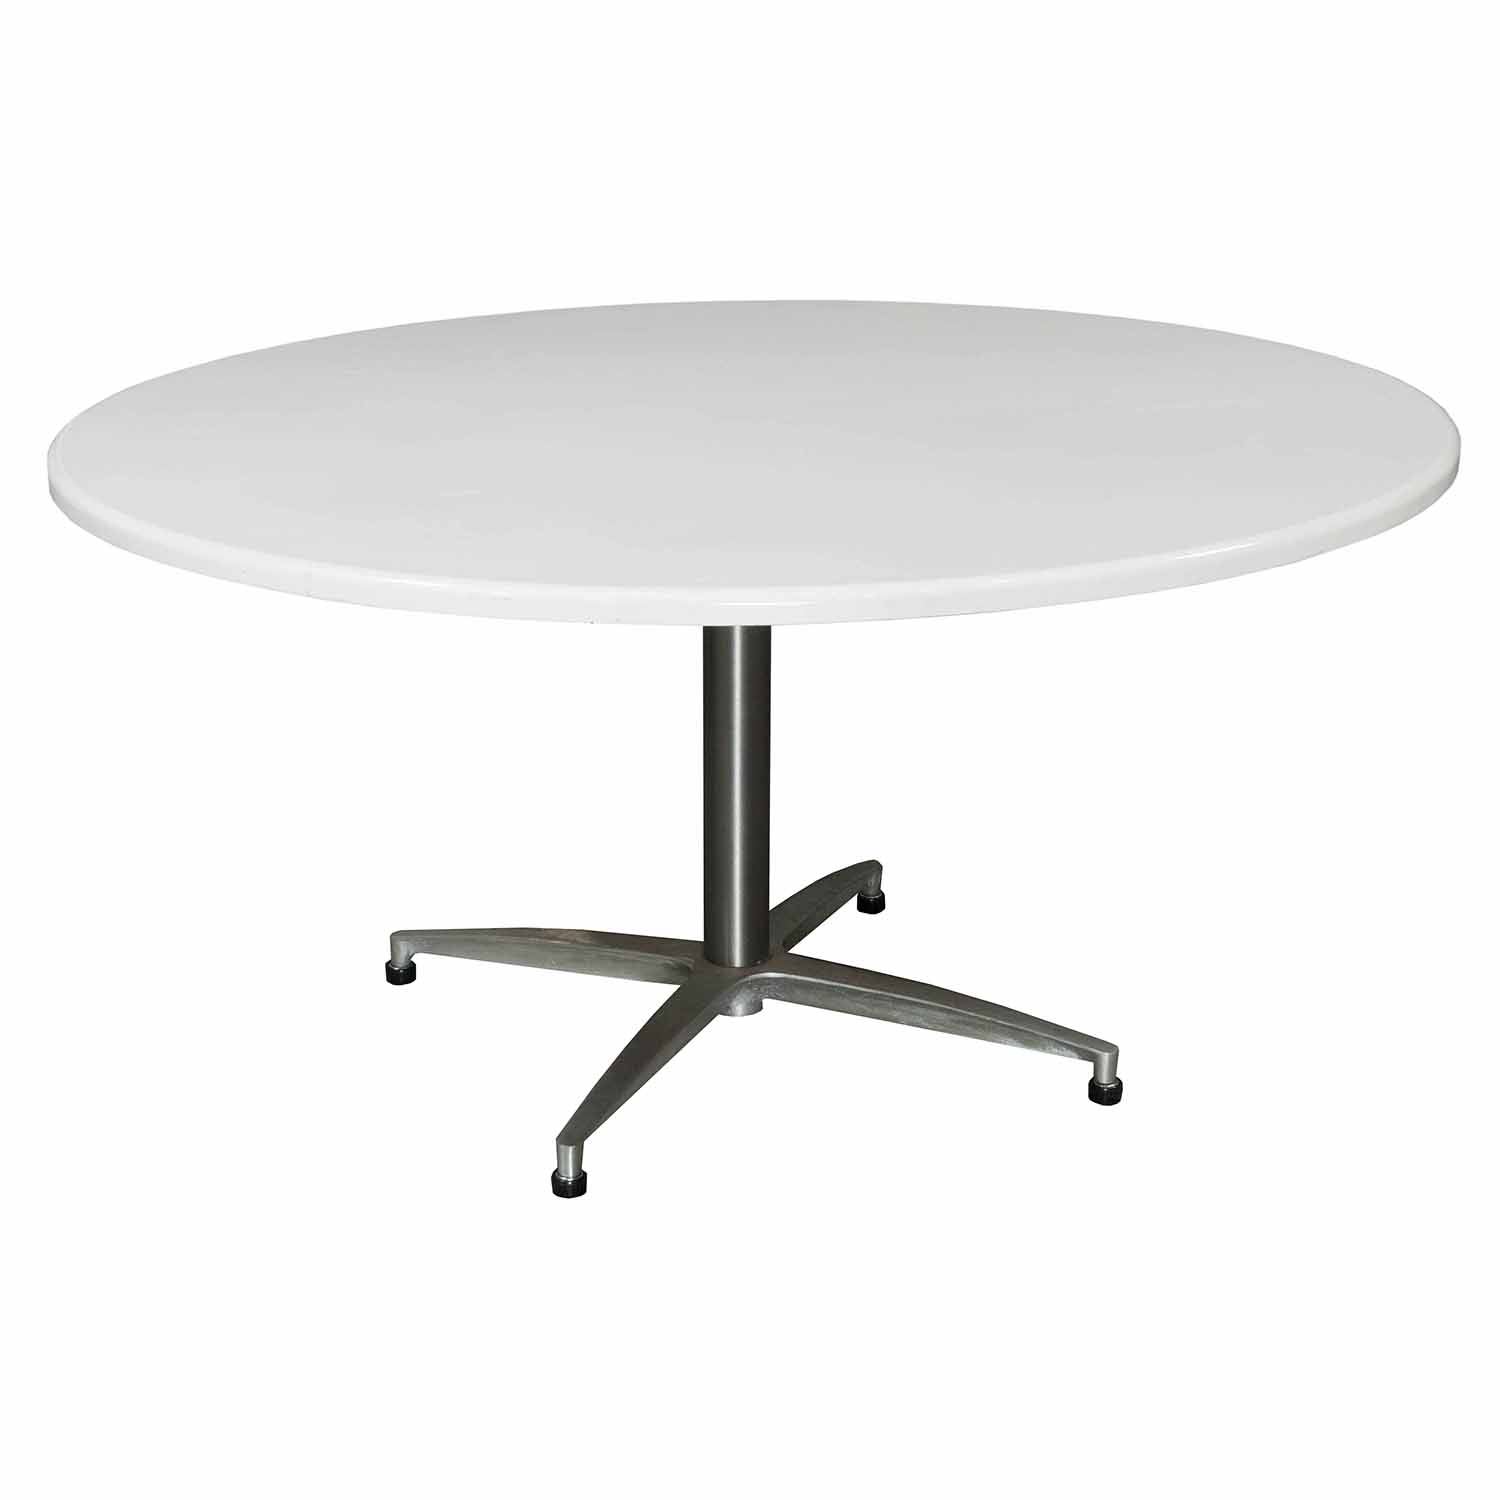 Wci Mark Iv Used Round 60 Inch Conference Table White